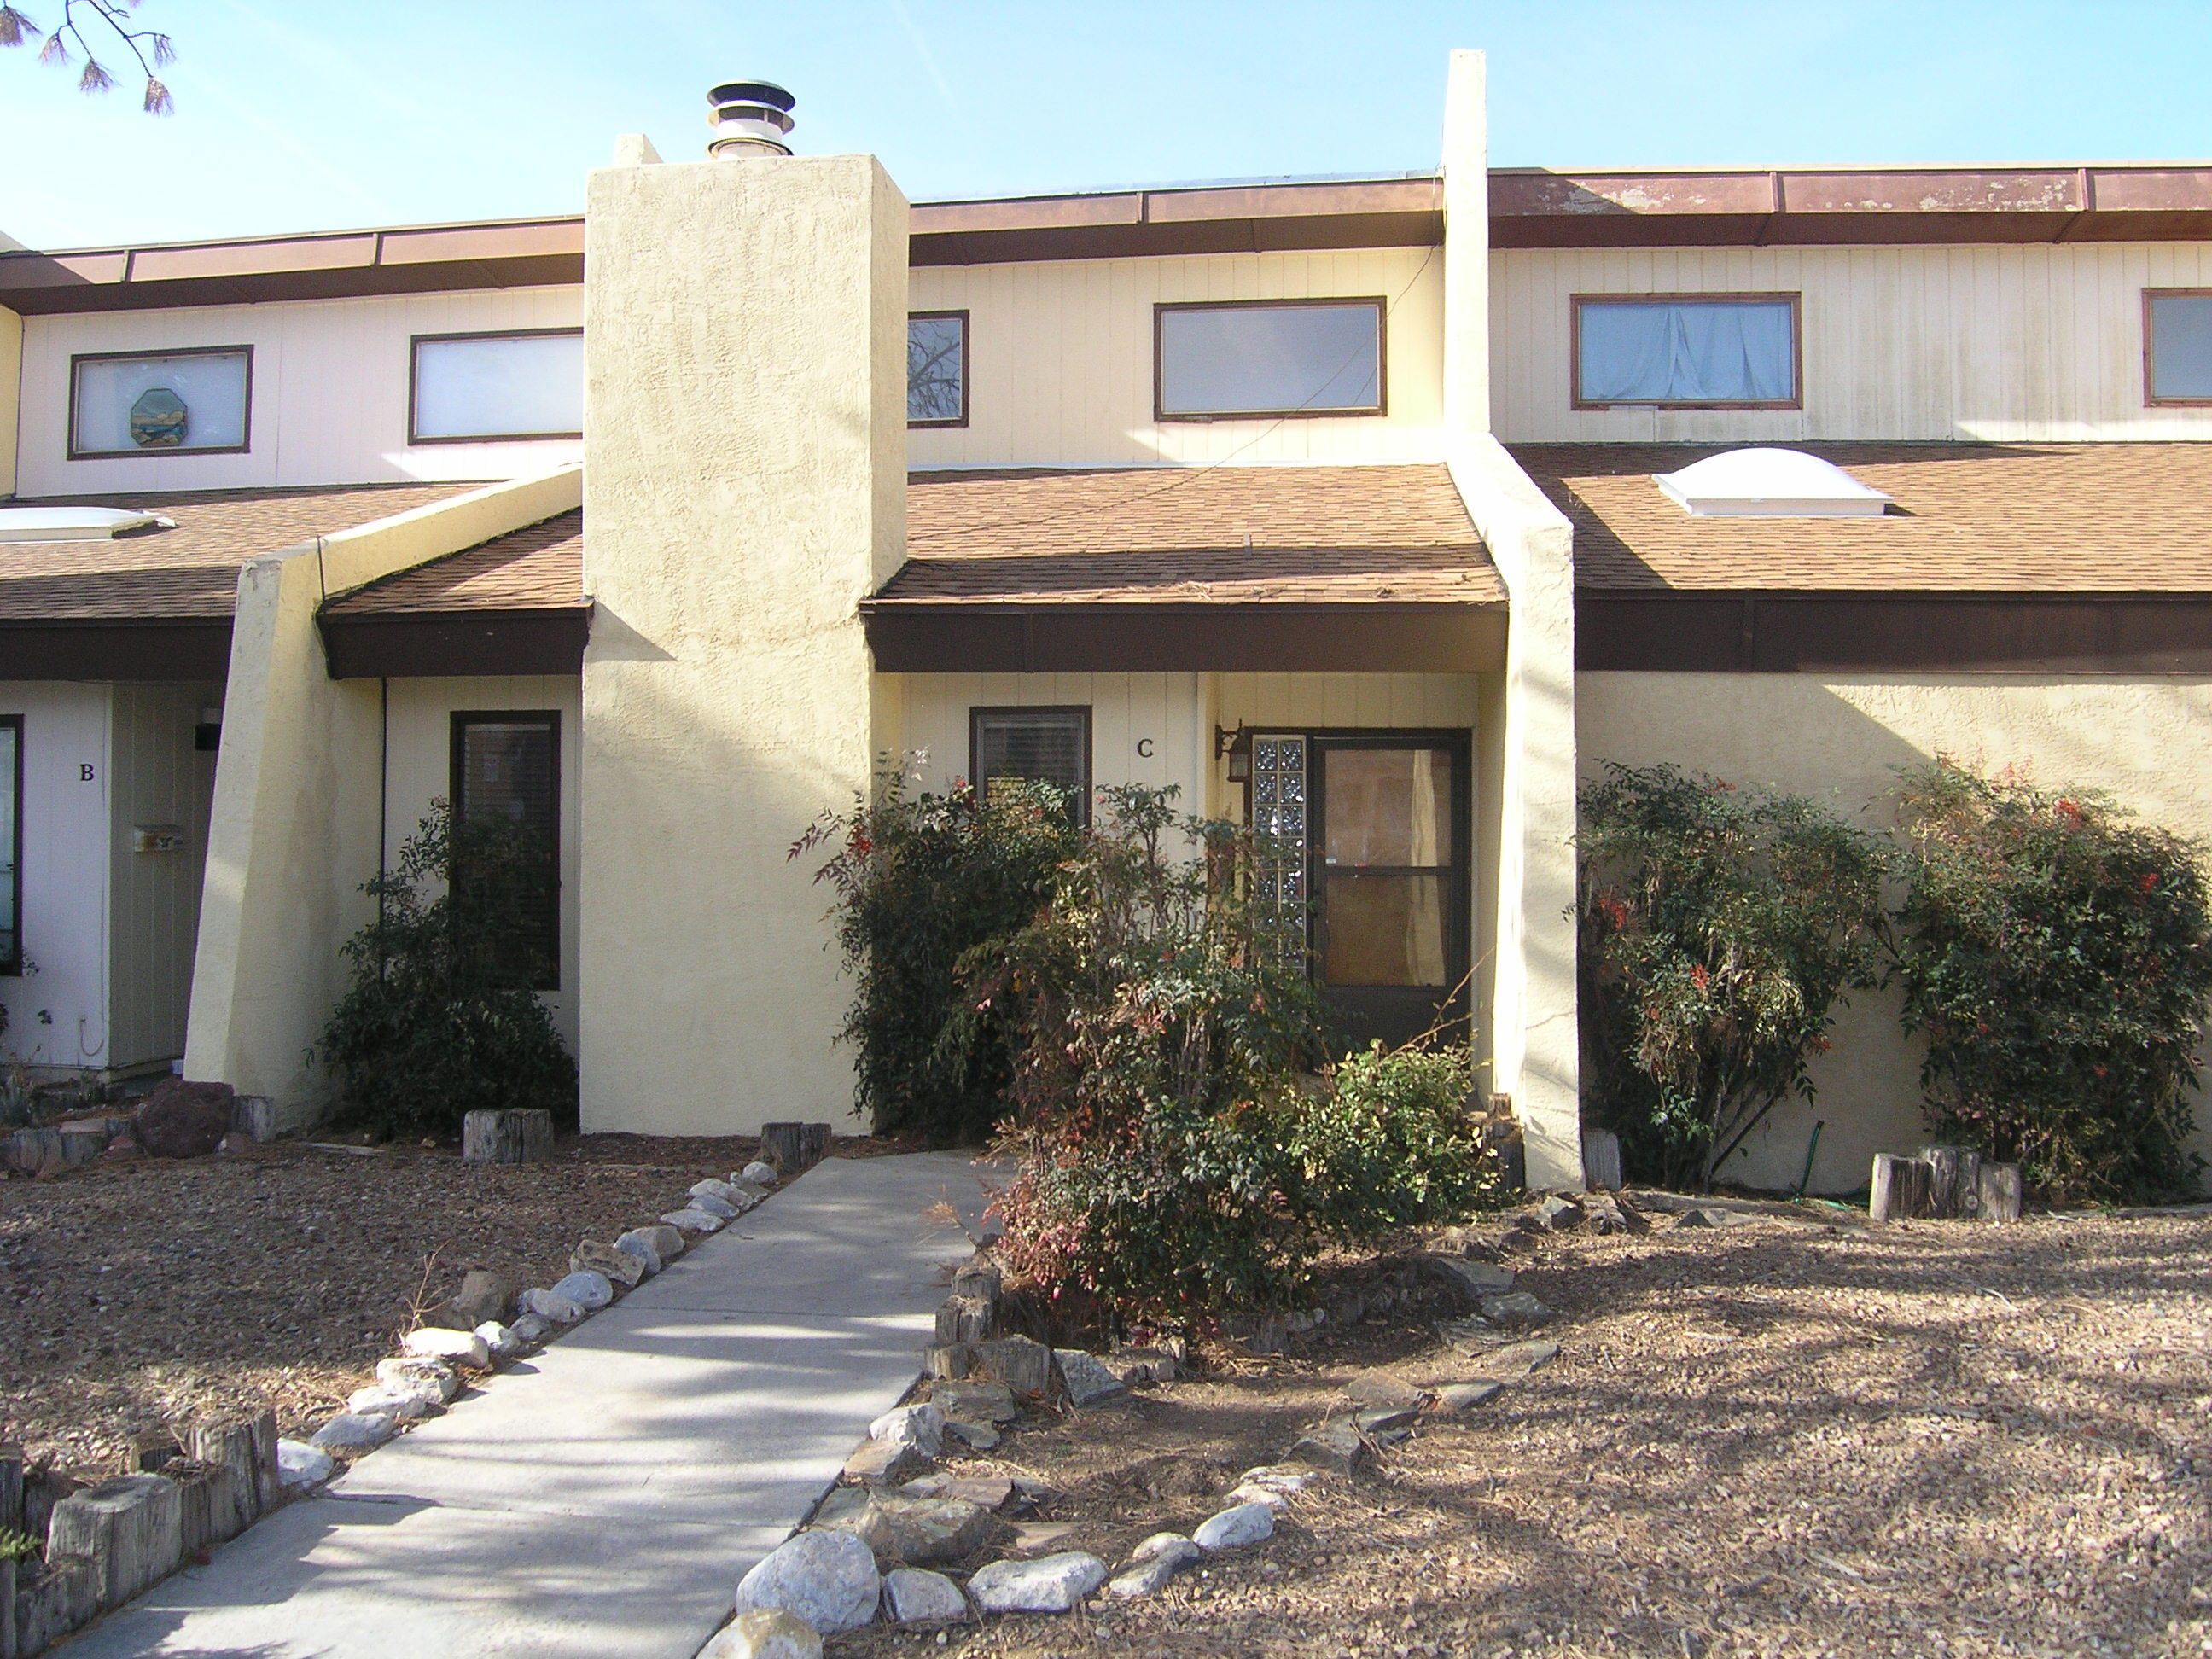 This home is the best value in all of UNM. It features a newly installed TPO and shingle roof systems (November 2020), new paint, and refrigerated air. The interior is open, light and spacious with soaring ceilings in the living room and wood burning fireplace with vintage rock surround. The dining room is large and looks onto a protected and secluded courtyard that is an ideal space for a serene rock garden.  Each floor has it's own bedroom for privacy-- ideal for a roomate or VRBO. The downstairs bedroom has a view into the courtyard.  The home features a two car garage. The house is within easy walking distance to the ART Bus lines or an easy bike ride to UNM.  Enjoy the access to the shops and dining of Nob Hill. There are no HOA fees for the unit.